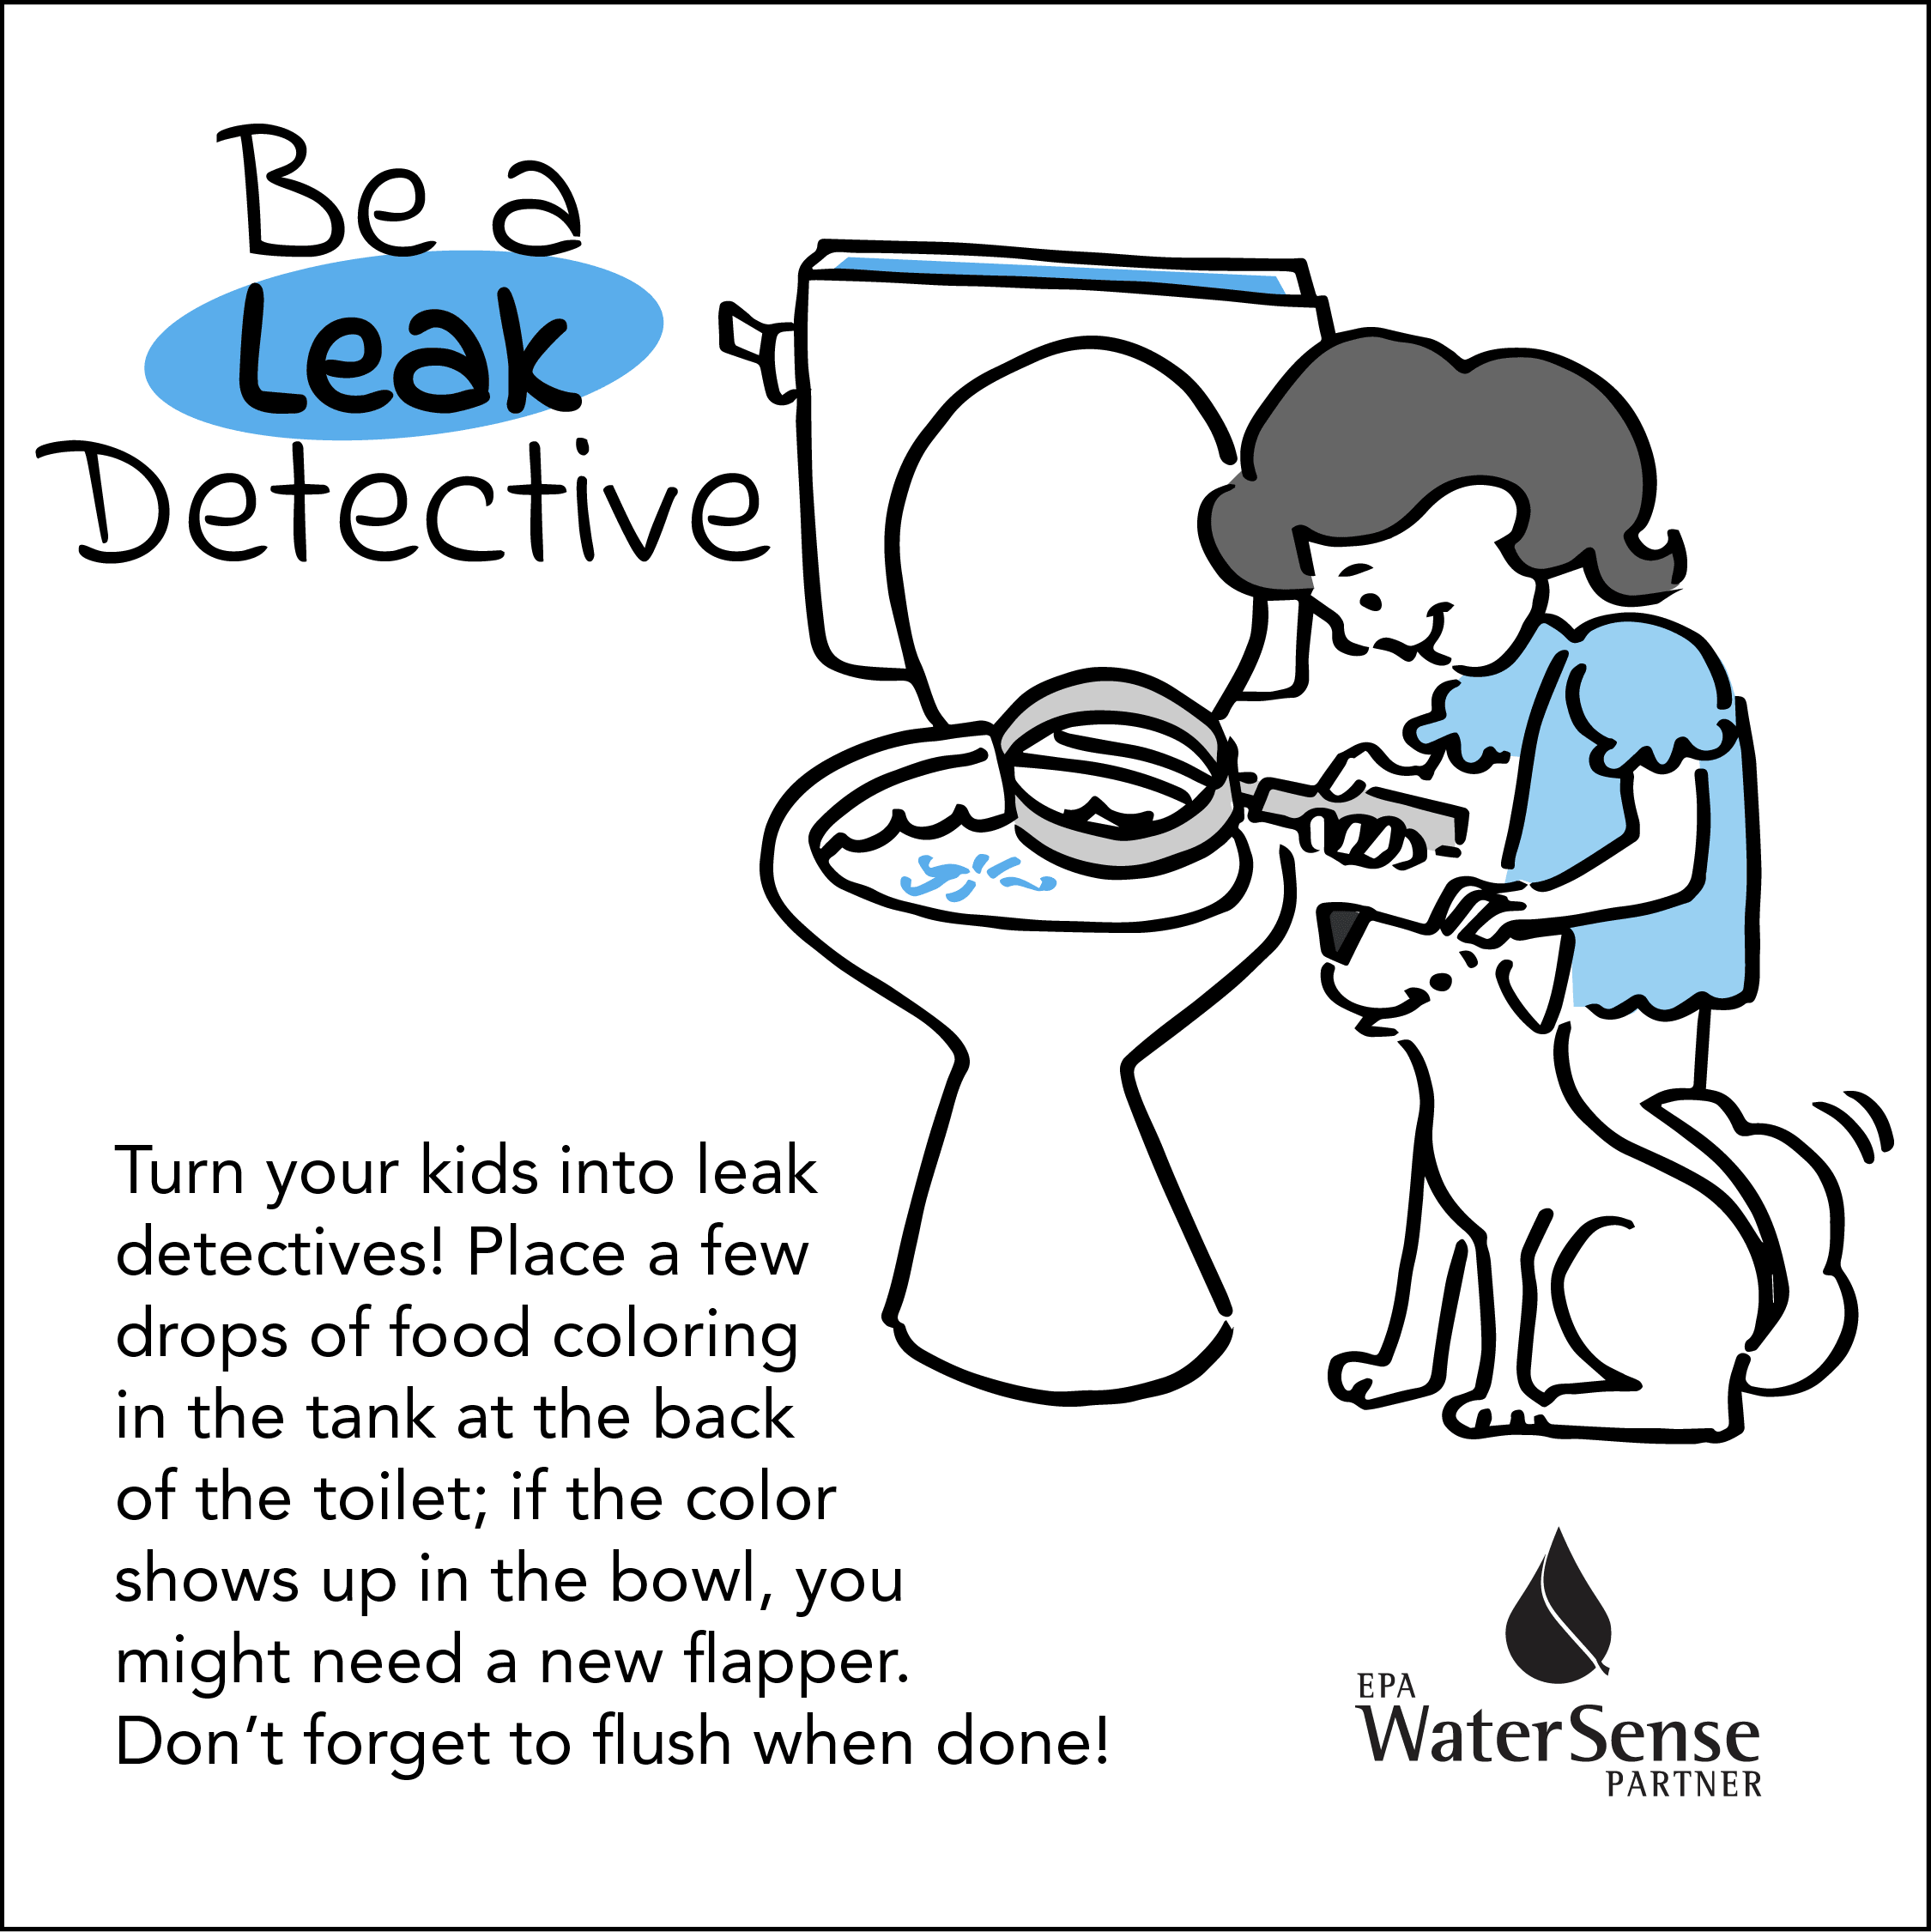 Be a Leak Detective for Kids encouraging them to look for leaks in the toilet using food coloring an